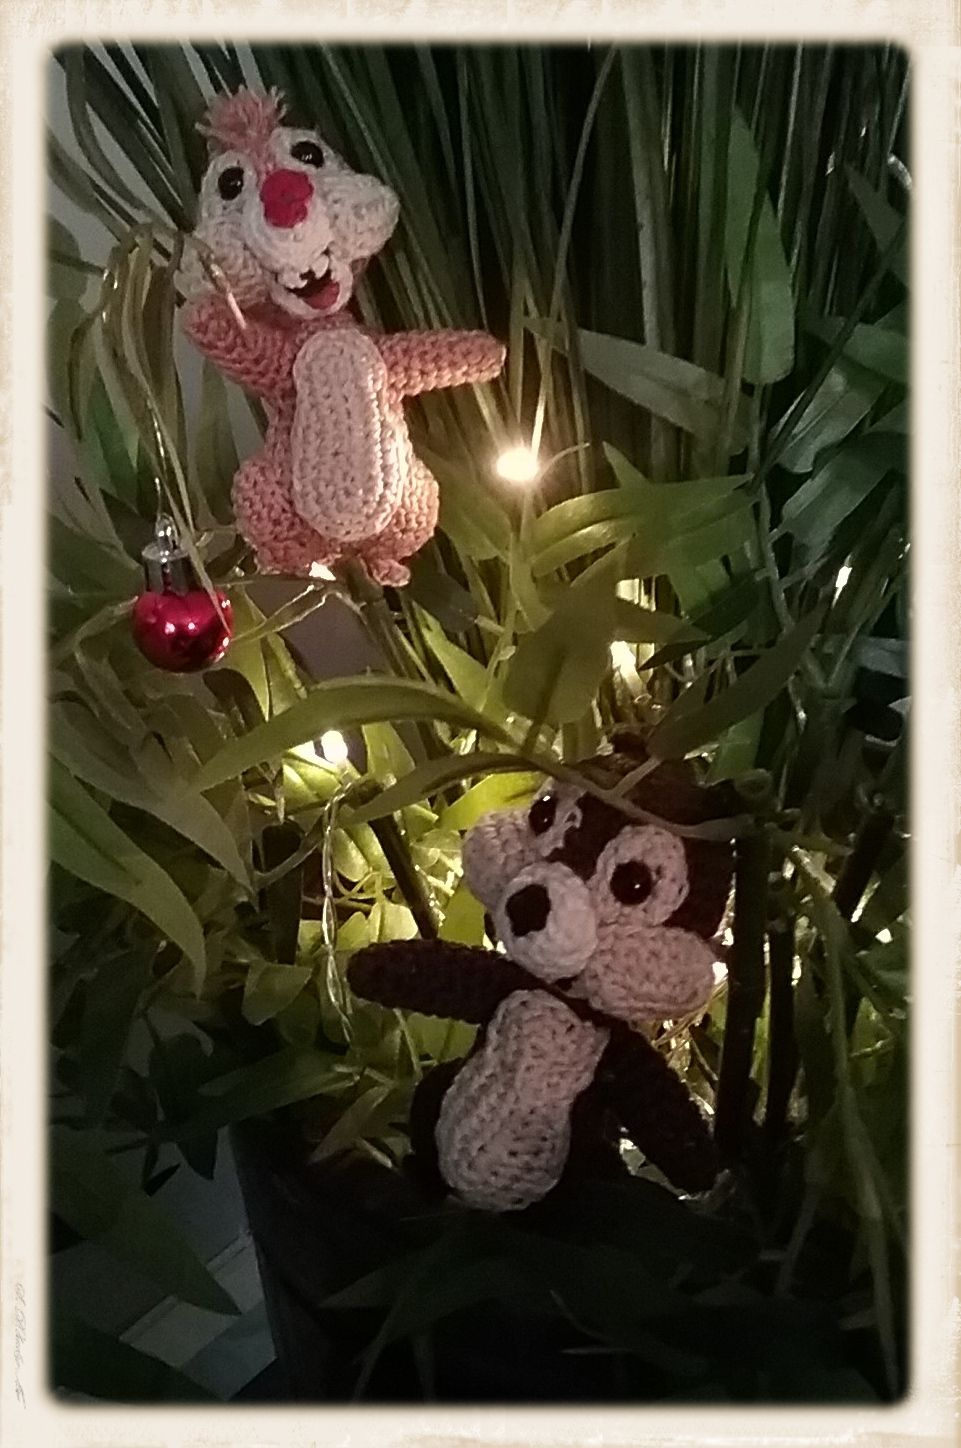 Chip and dale in the chirstmas tree pattern from